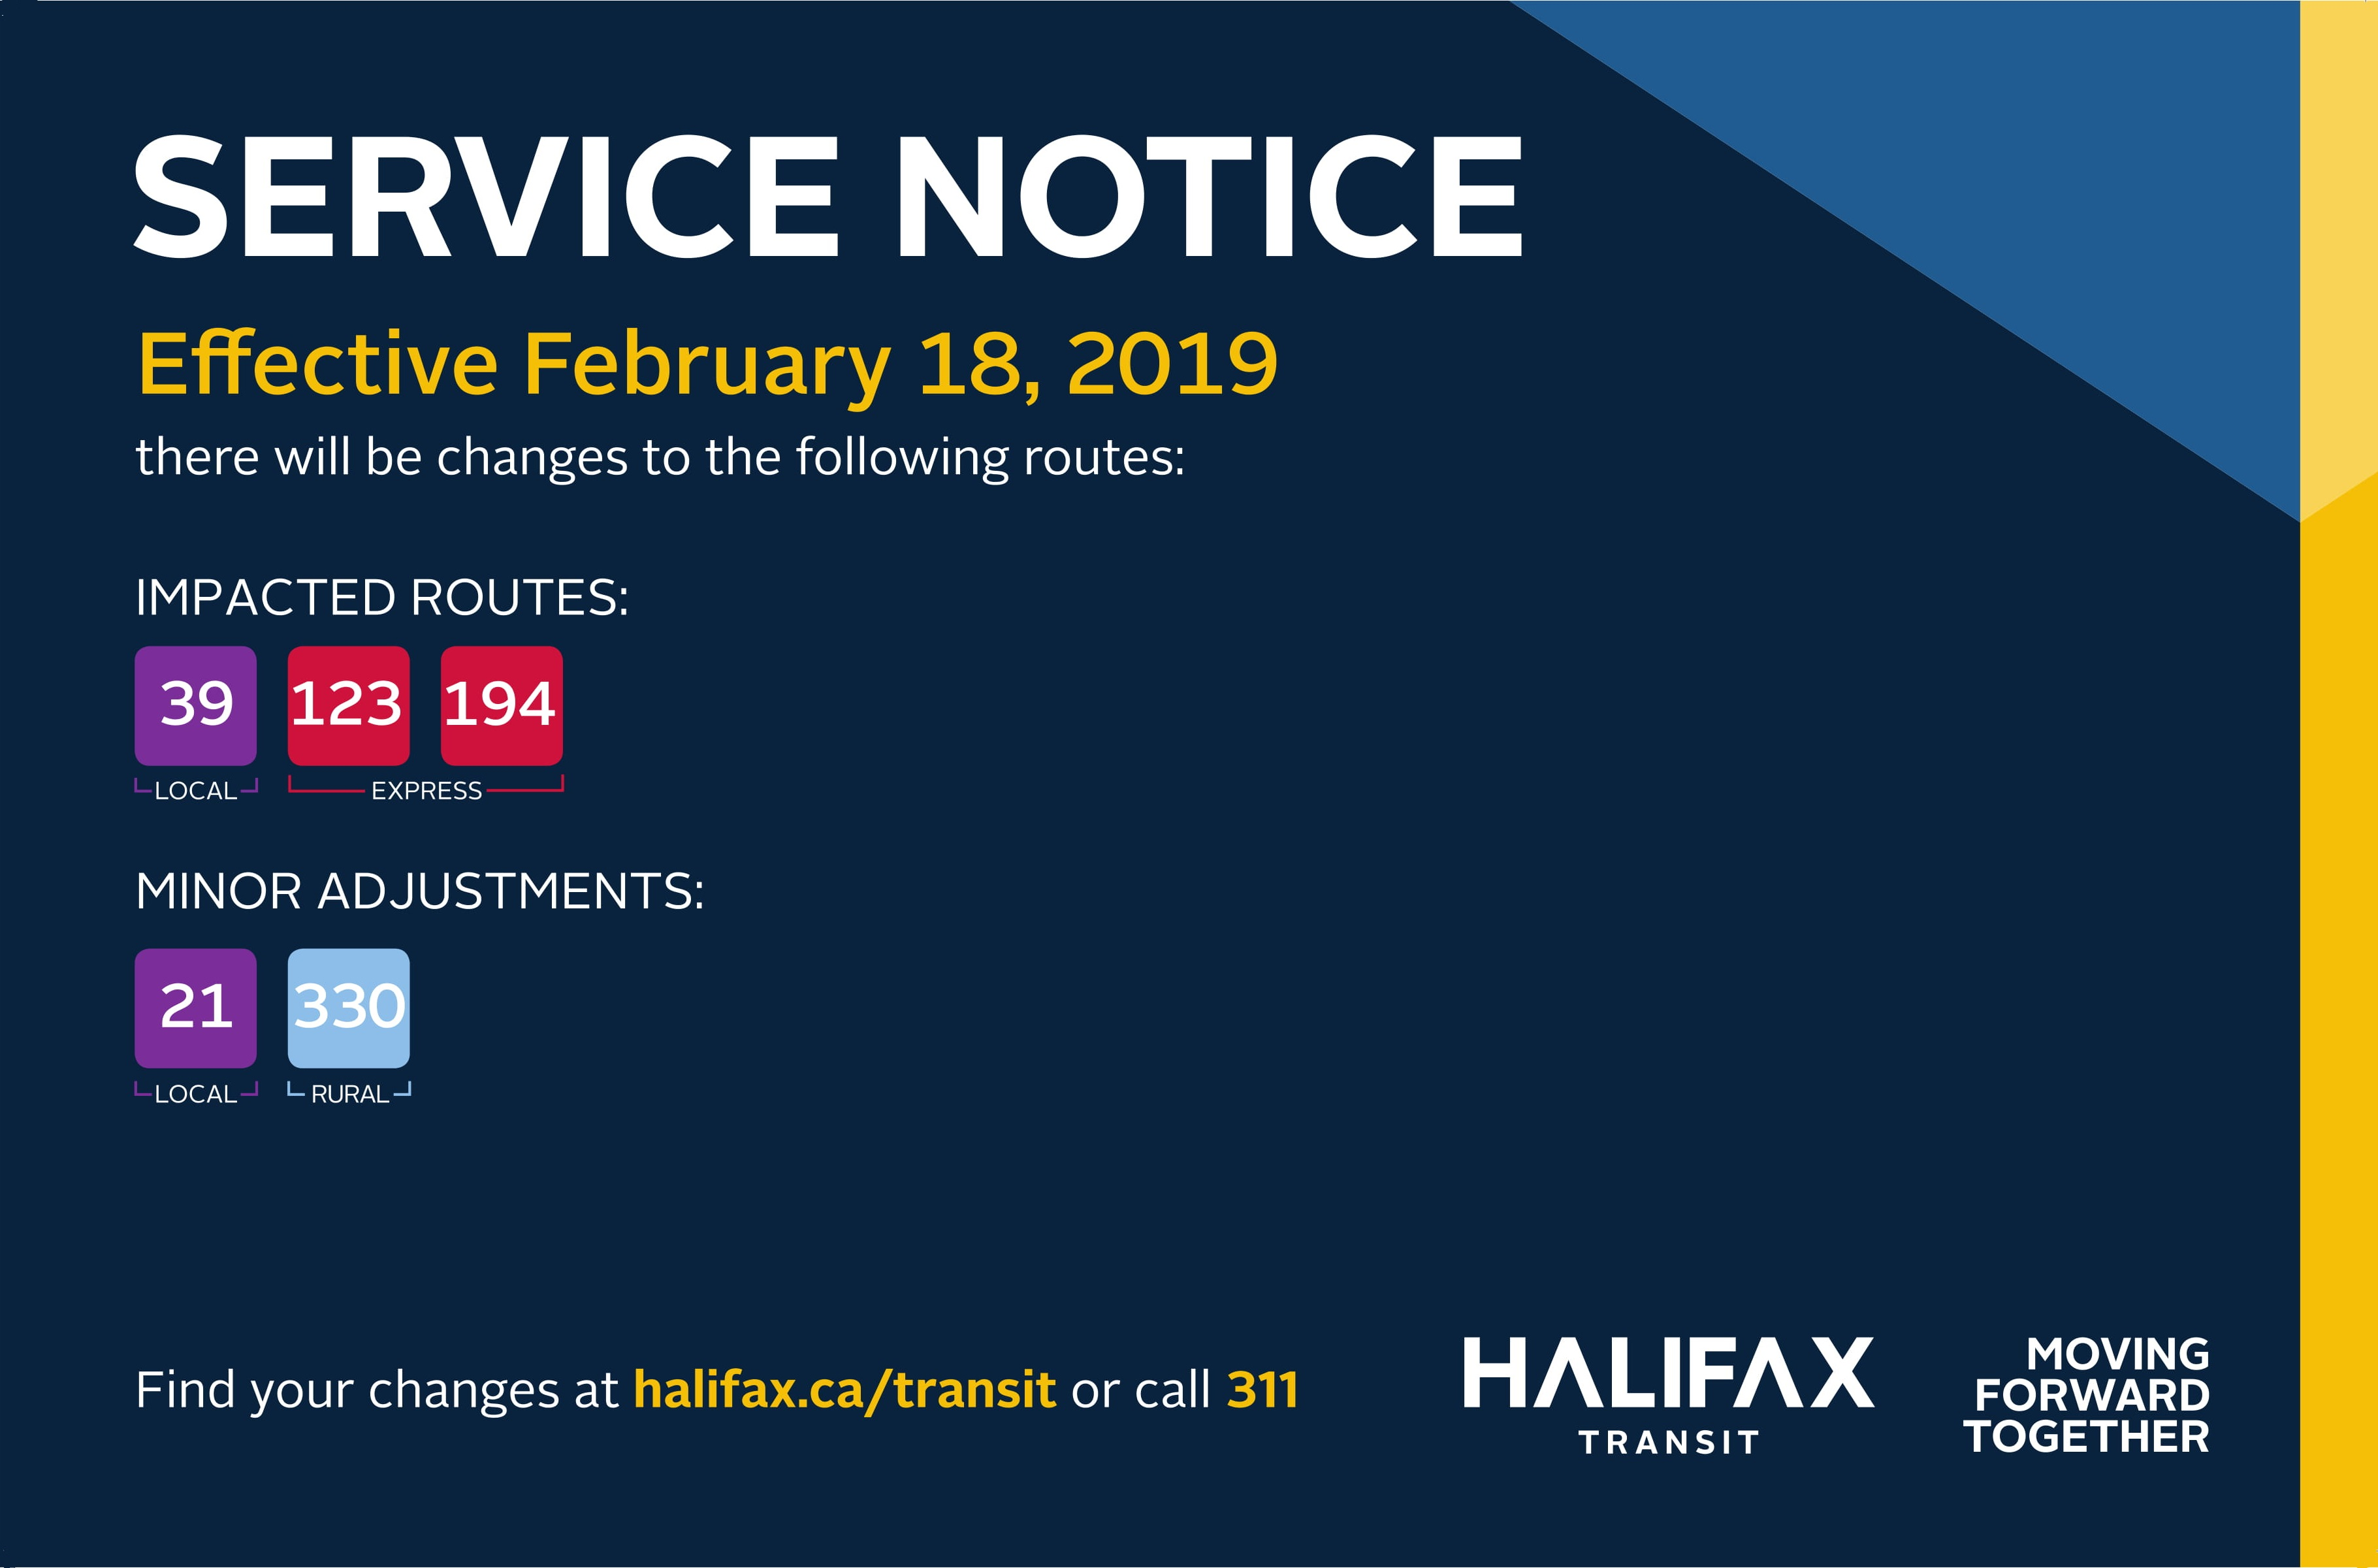 On February 18, 2019 there will be changes to routes 39, 123, 194, 21, and 330.